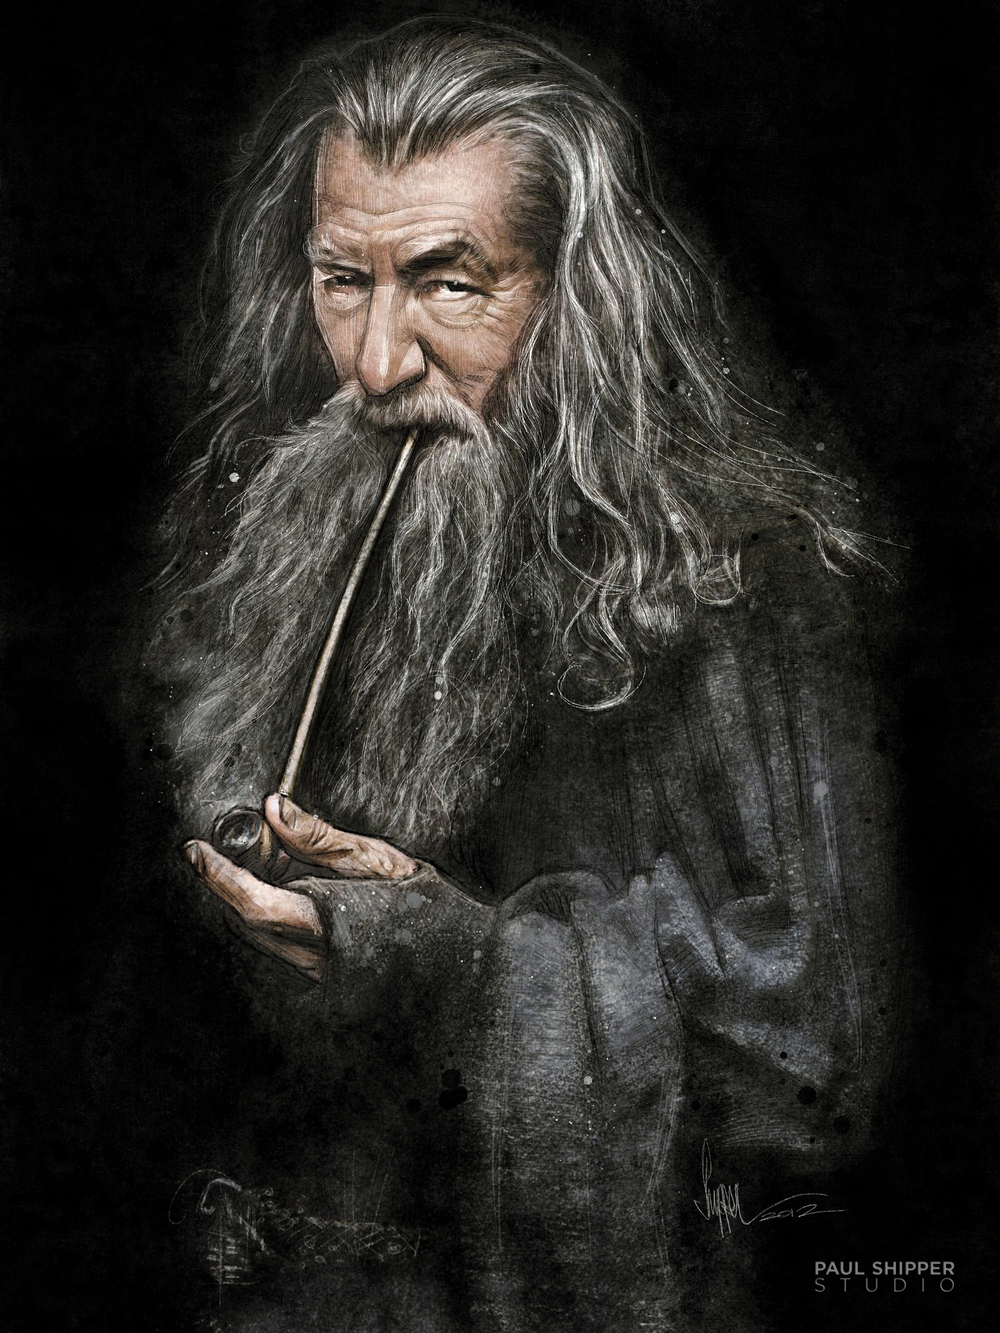 gandalf the hobbit In peter jackson's films, glamdring is one of gandalf's primary weapons in the hobbit trilogy, gandalf is able to recognise it as a sword of gondolin, but elrond identifies it by name the design of the blade is also different to the elvish curved swords regularly seen.